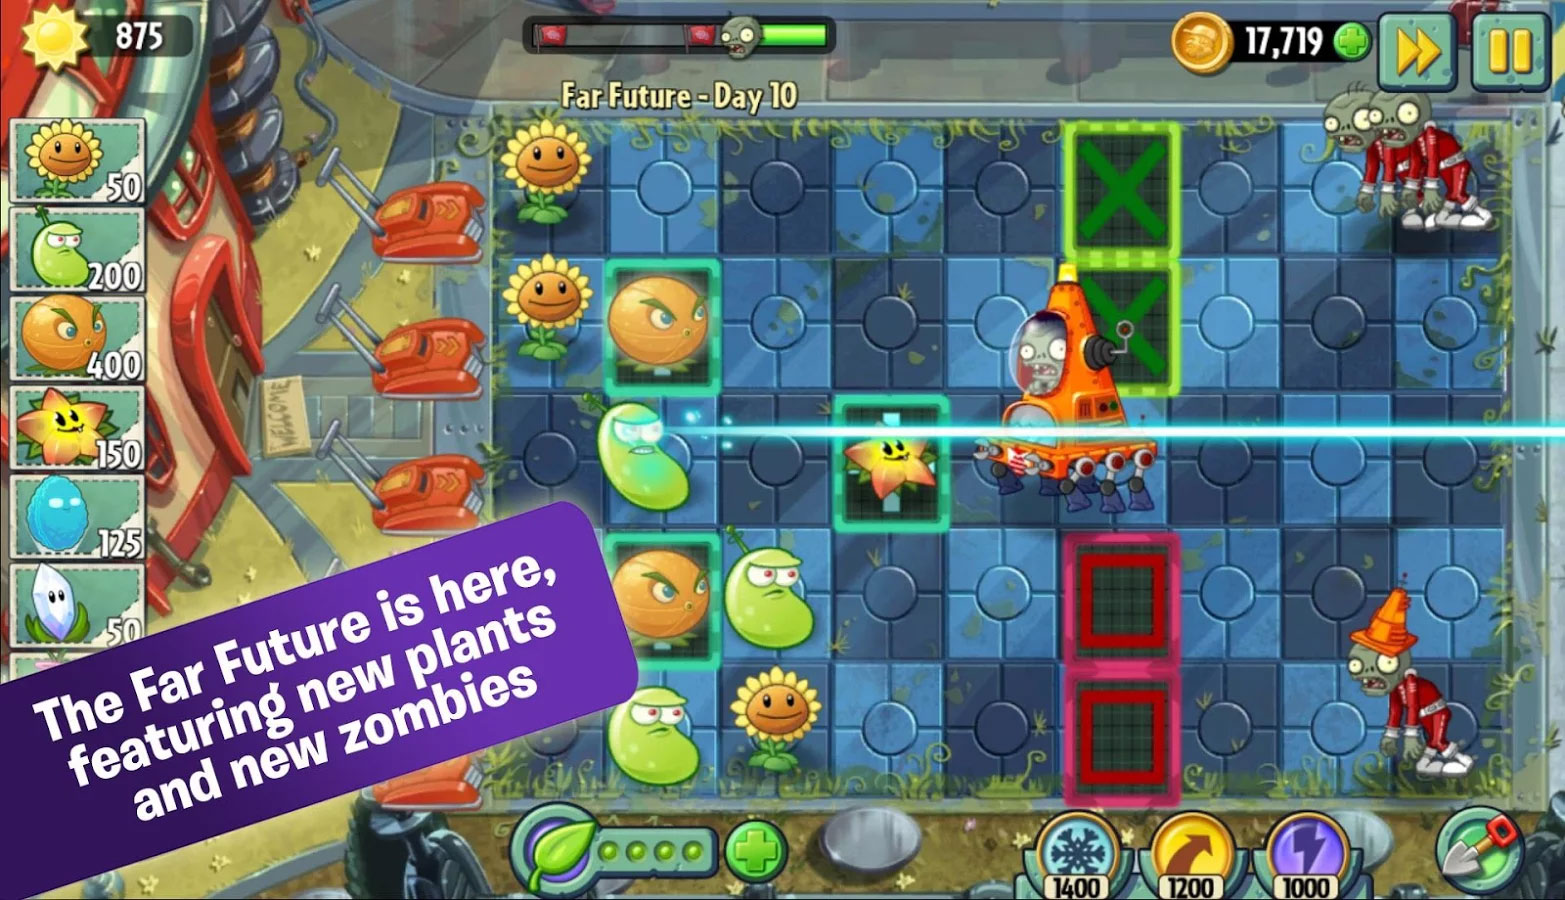 http://www.apktops.ir/wp-content/uploads/2014/02/Plants-vs.-Zombies-2-3.jpg